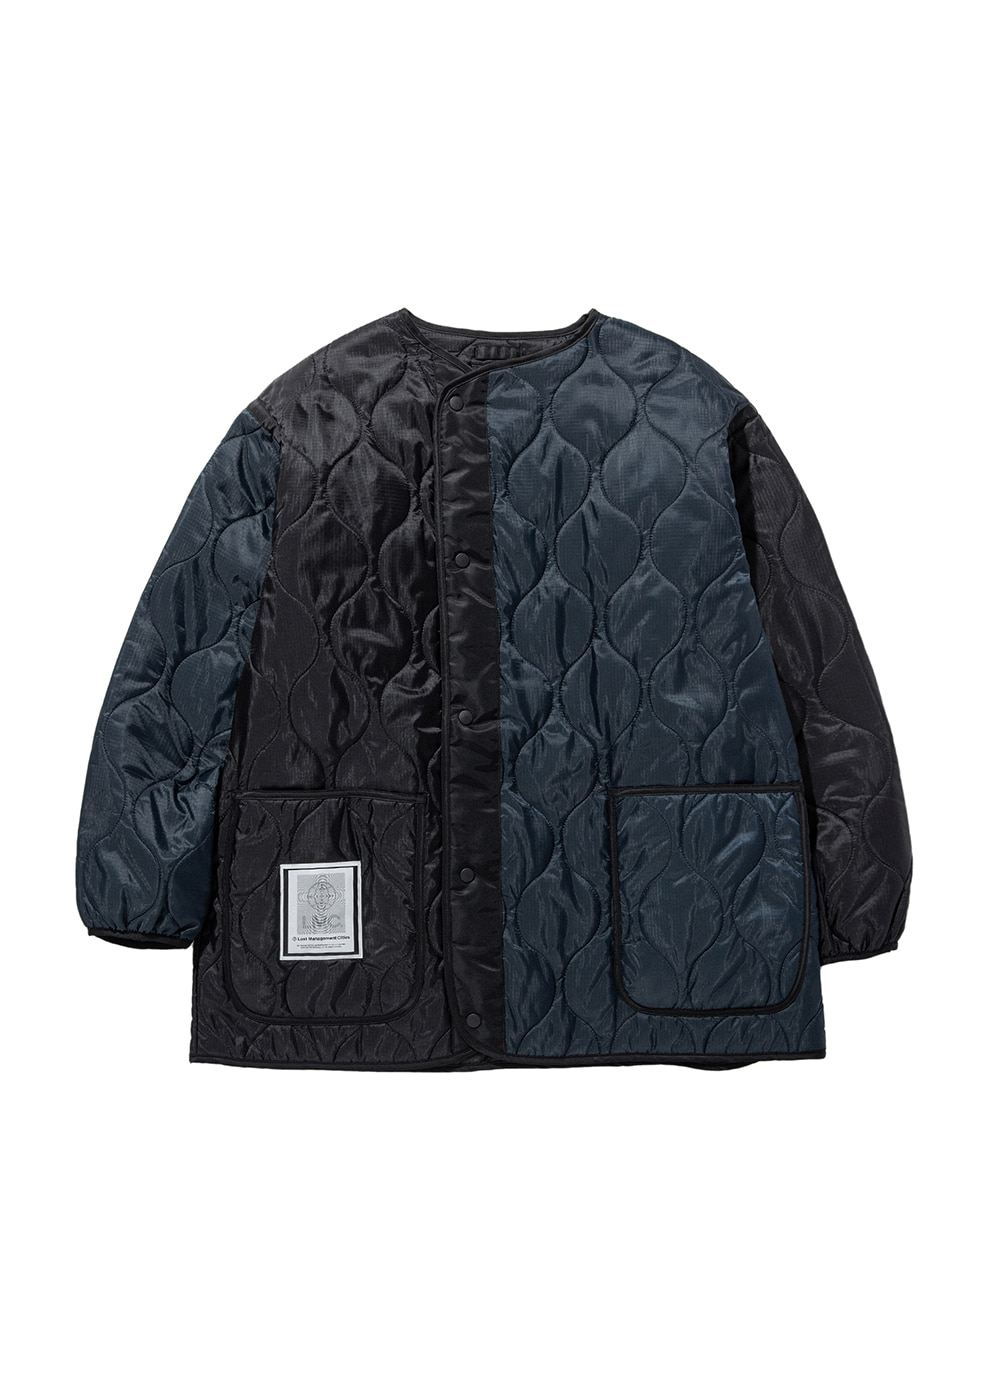 LMC QUILTED LINING JACKET black